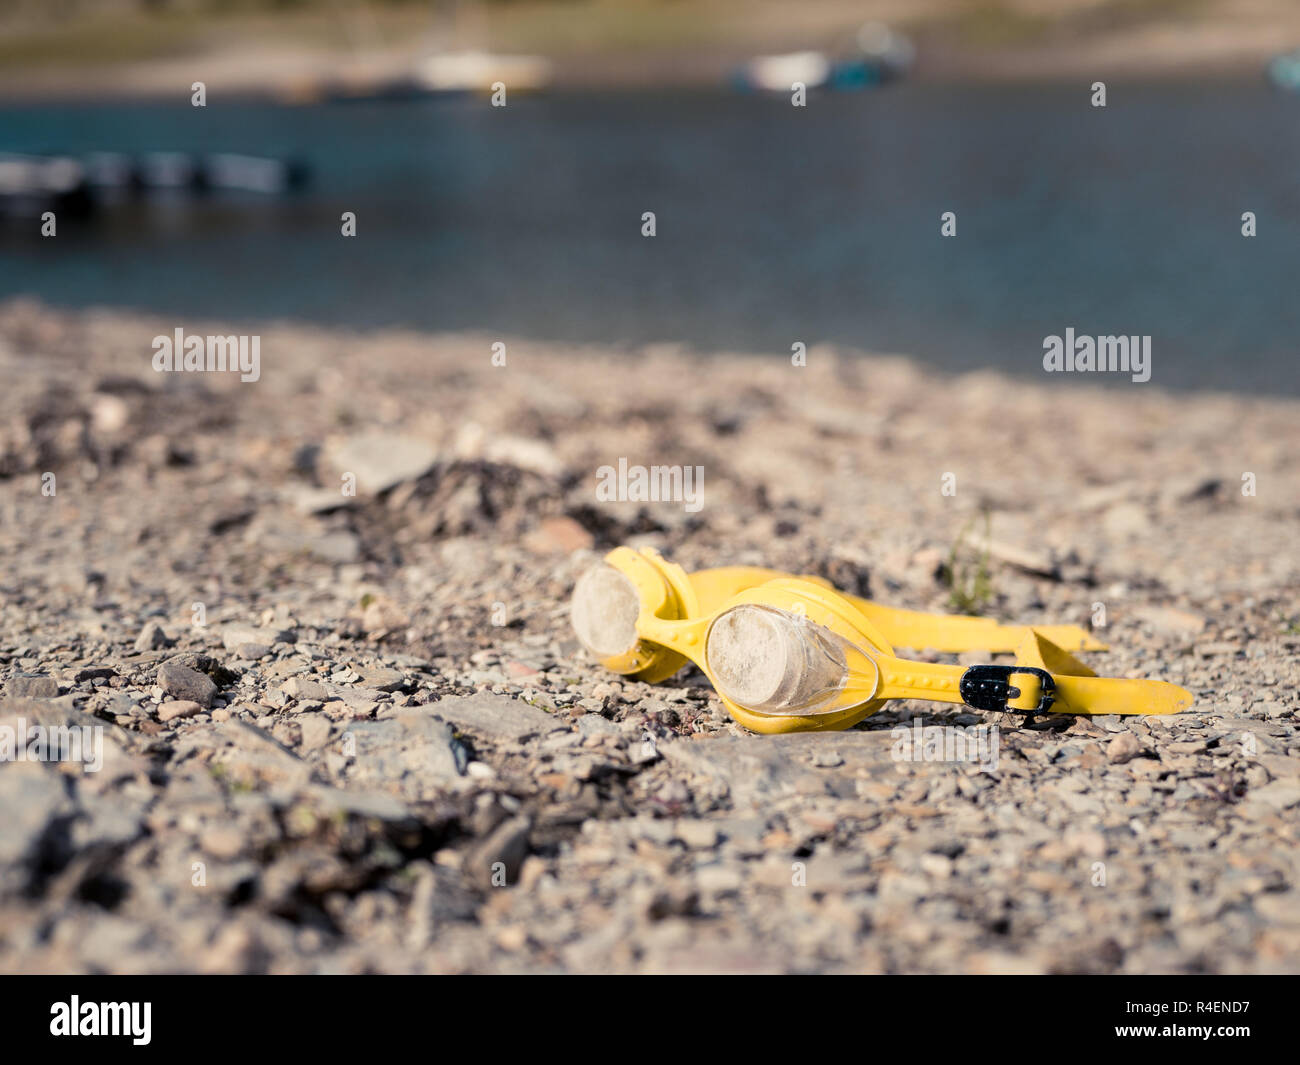 Old, dirty yellow swimming goggles lying on a beach - Stock Image